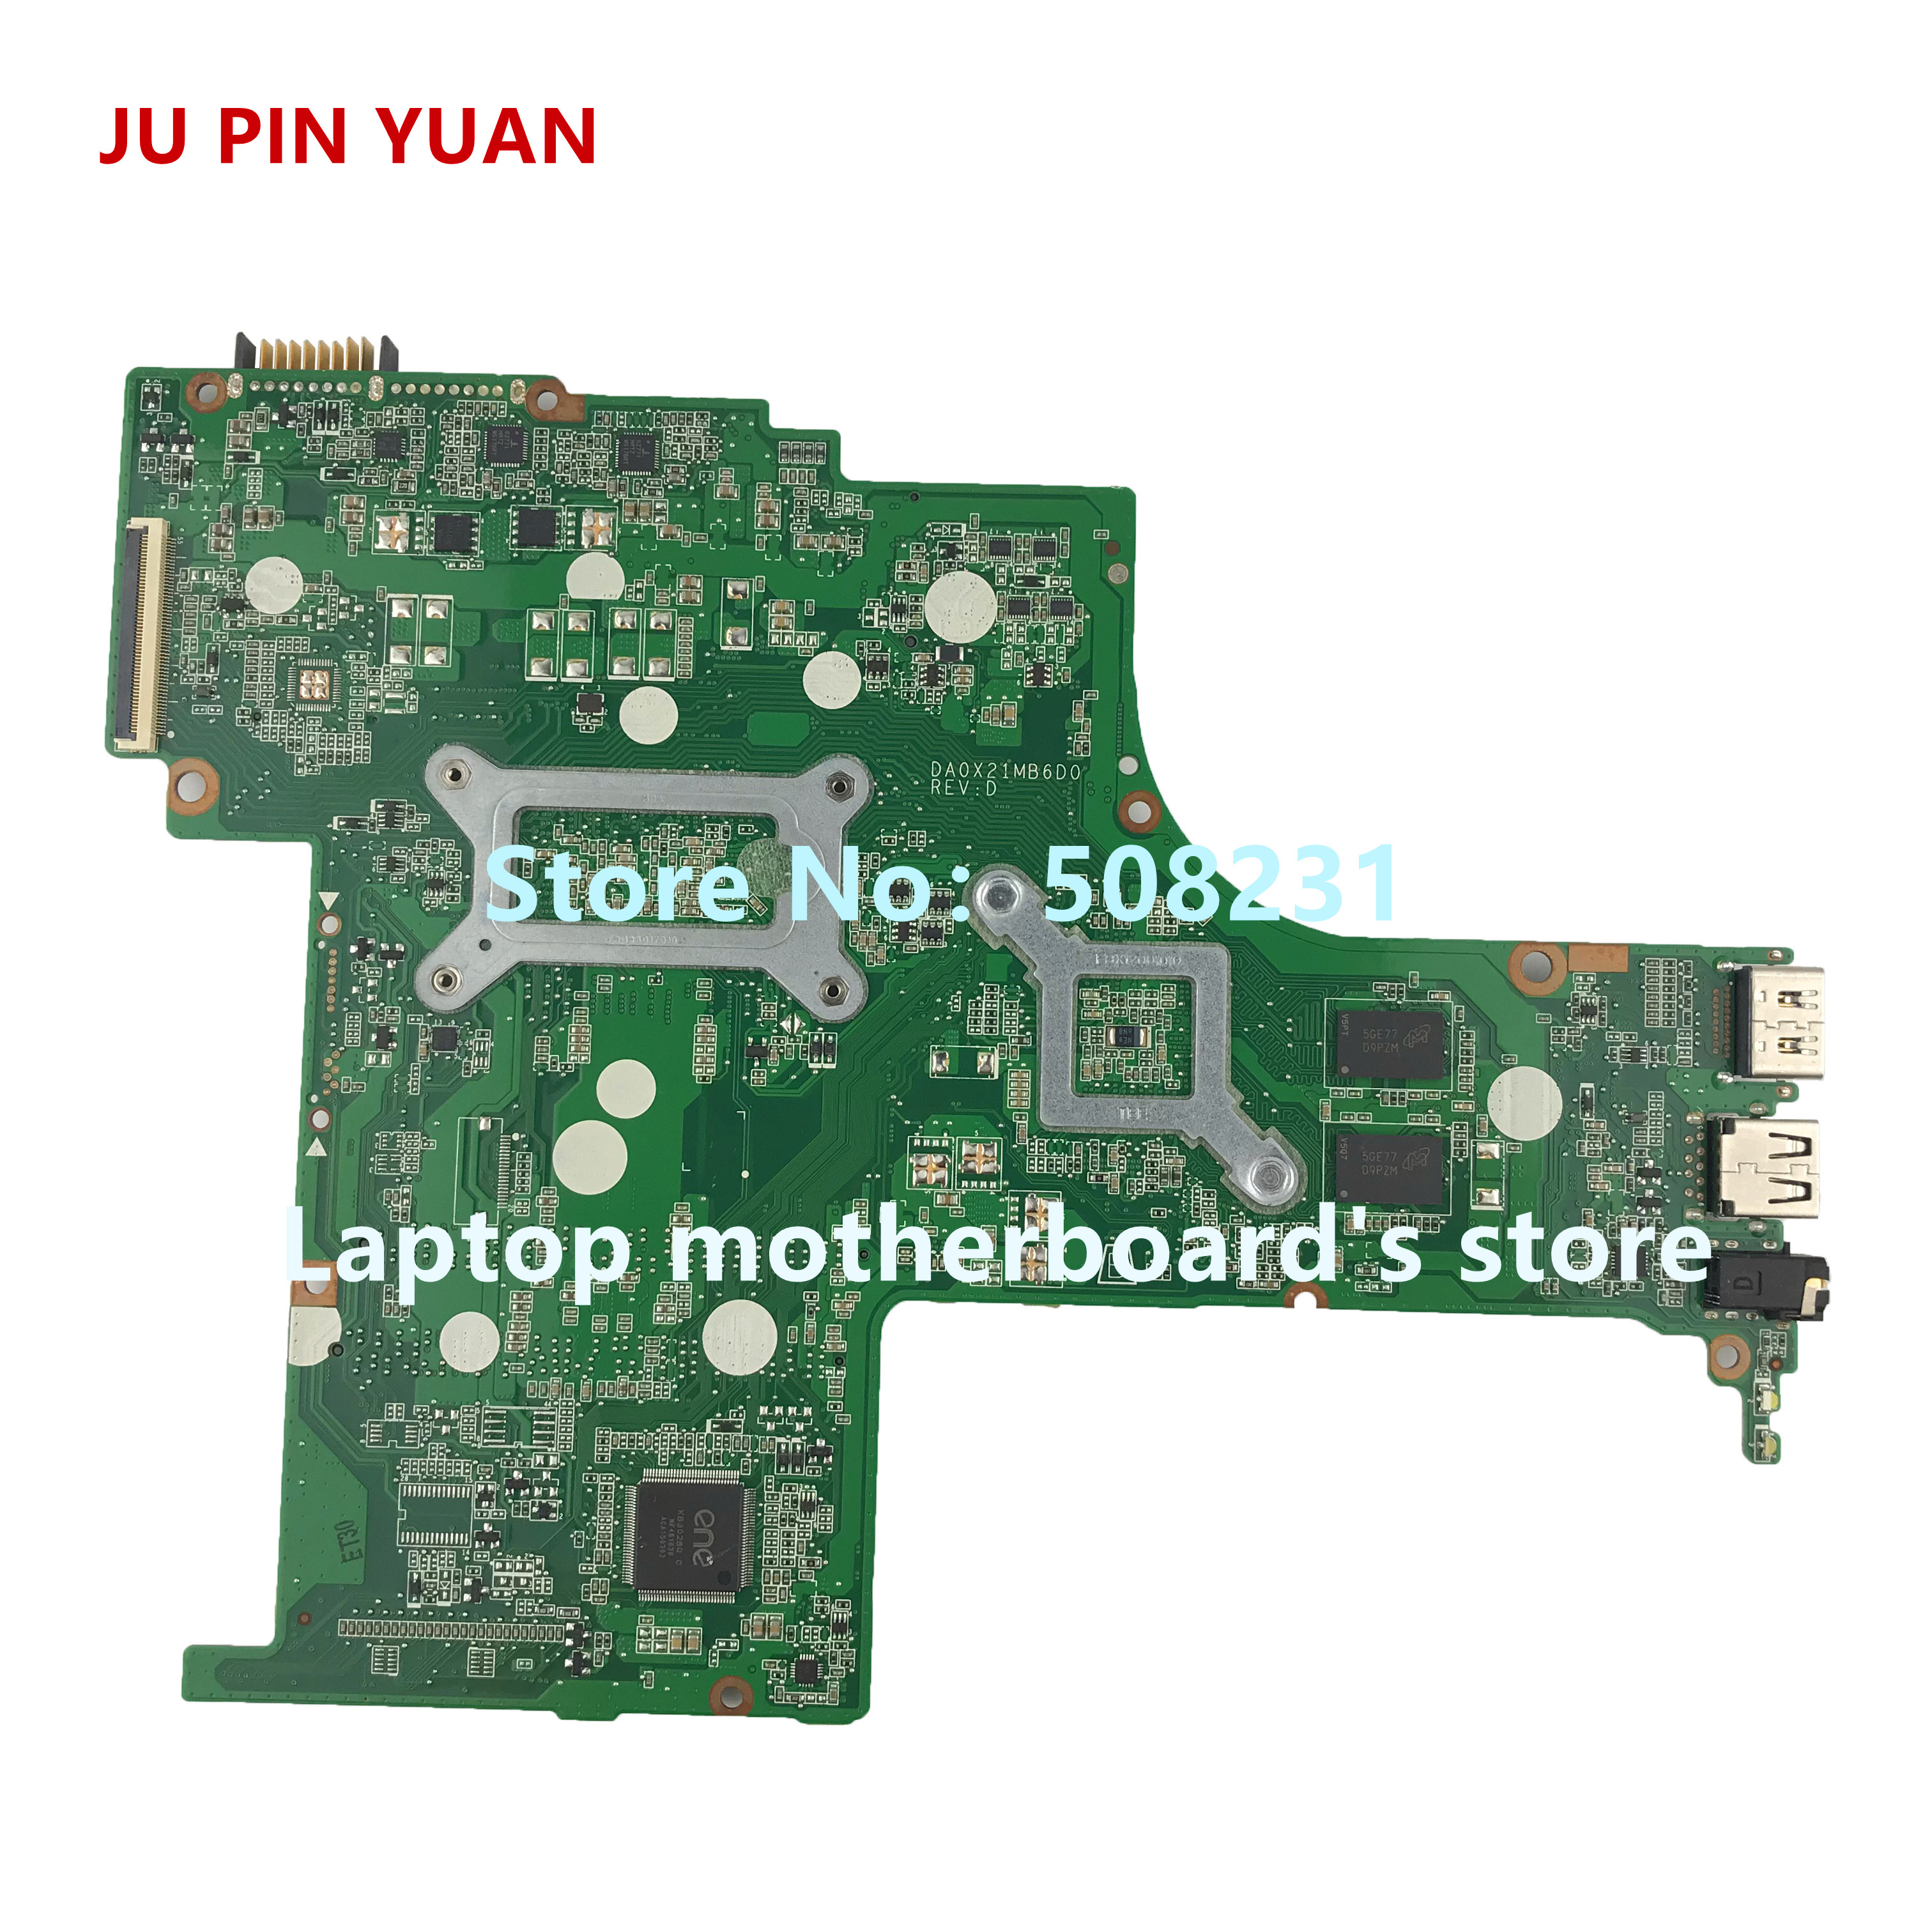 Купить с кэшбэком JU PIN YUAN 809408-501 809408-601 809408-001 DA0X21MB6D0 X21 for HP PAVILION 15-AB 15Z-AB motherboard with R7M360 2GB A10-8700P